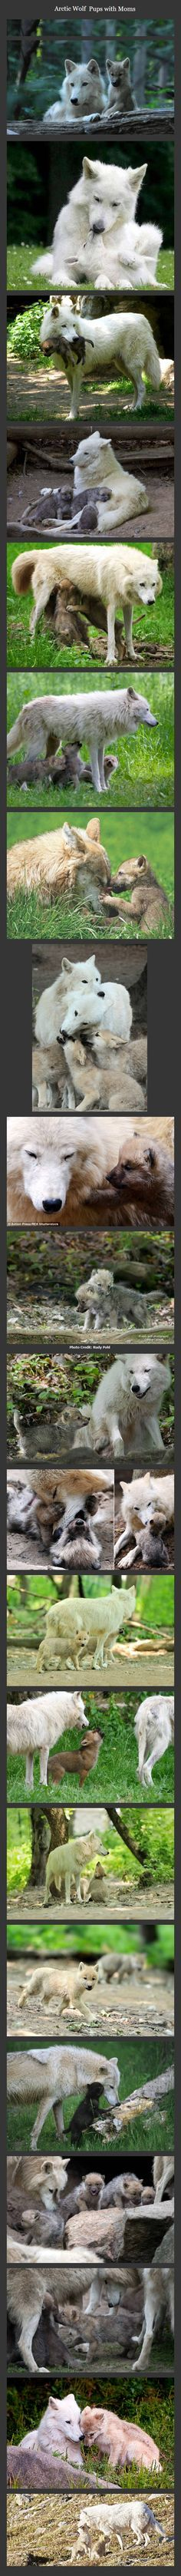 Arctic wolves and their pups ~SheWolf★